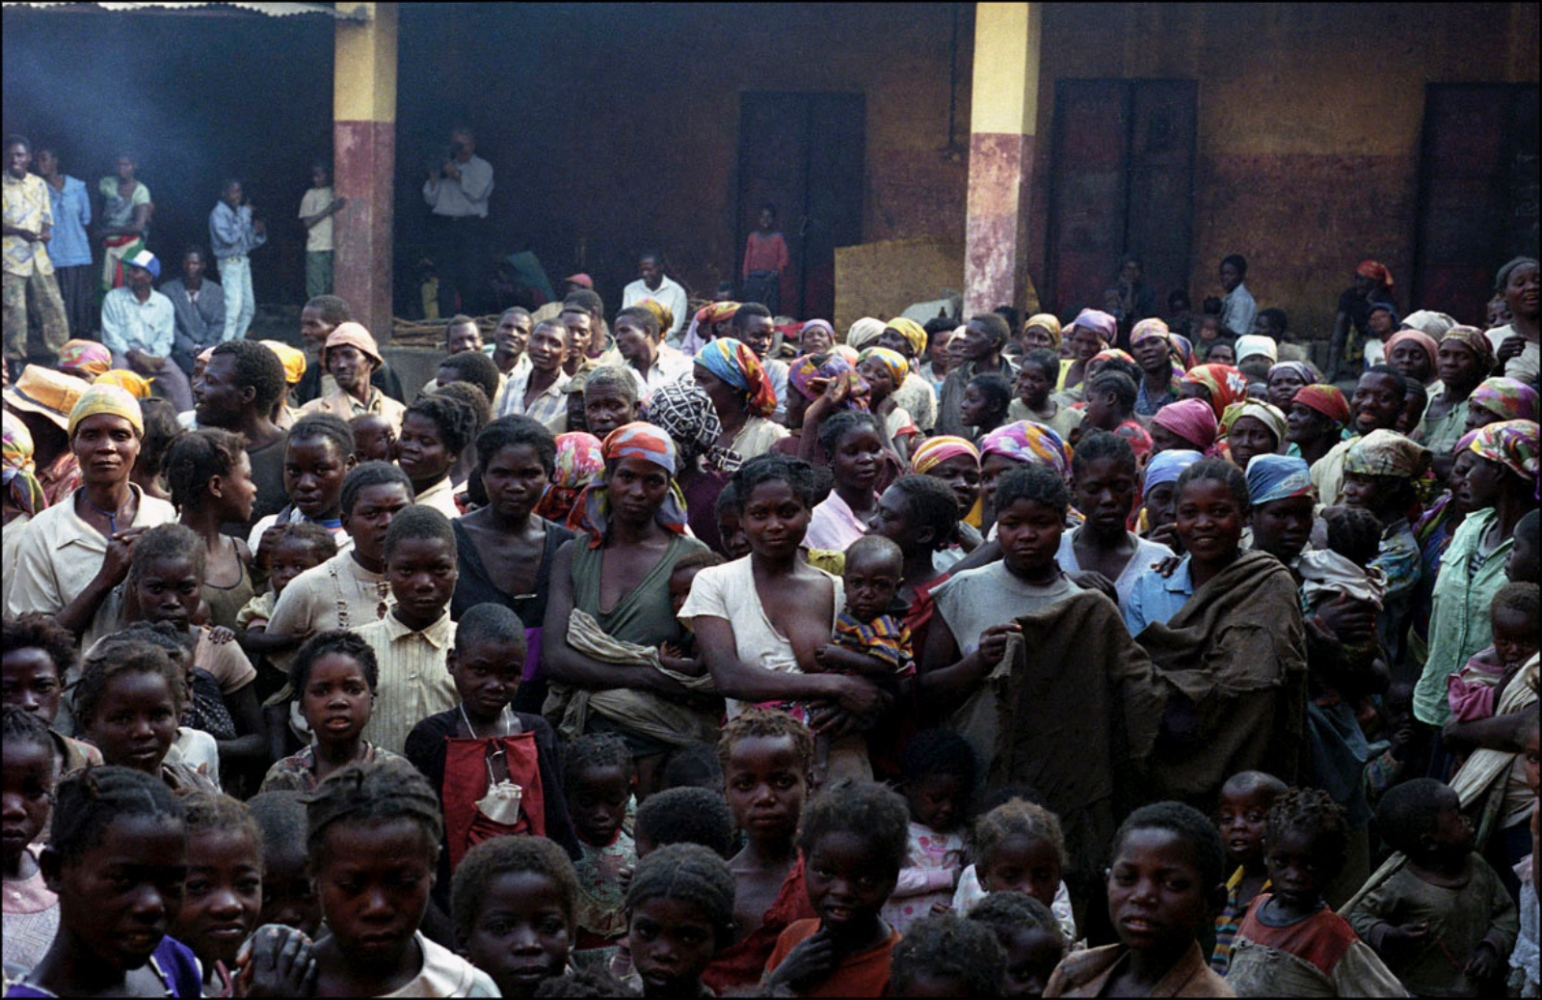 Large Group Looking at Me, Caala, Angola, July 2000